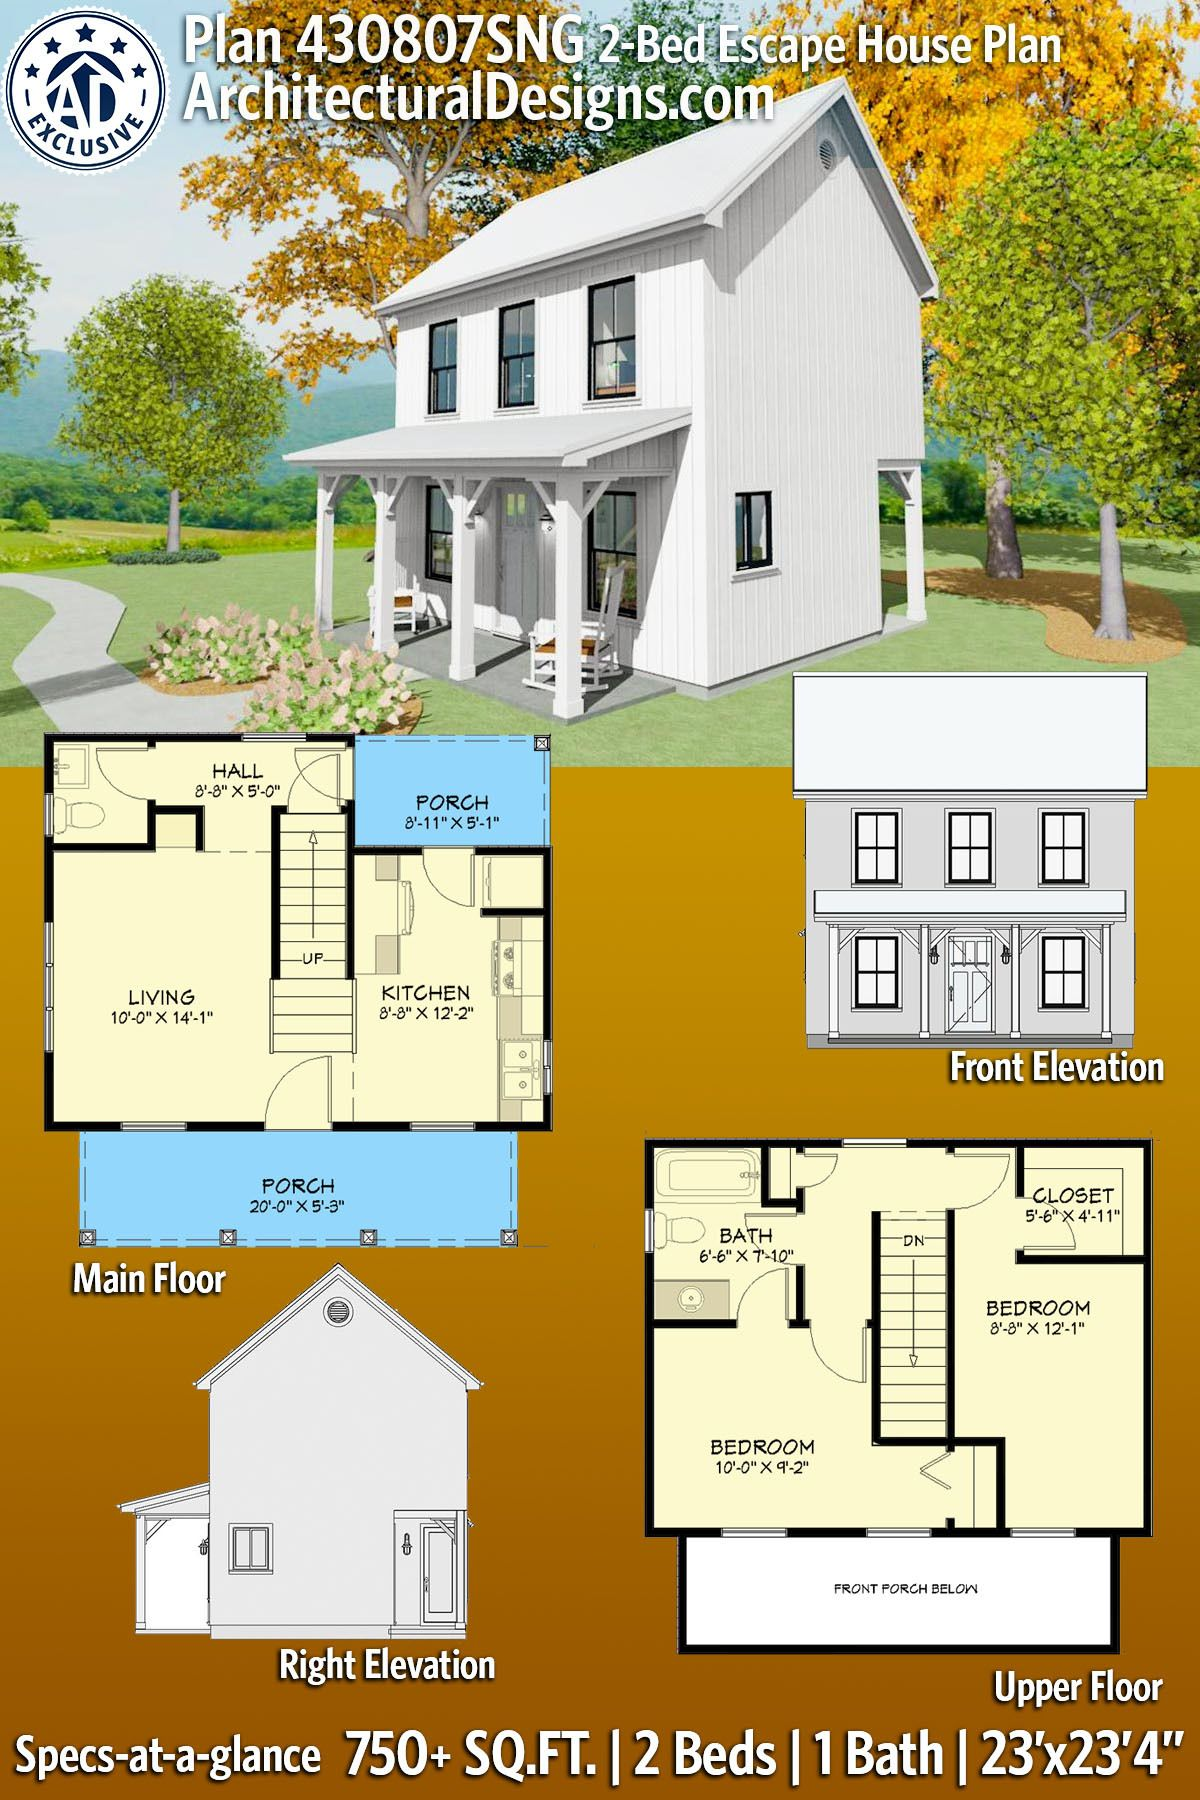 Plan 430807sng Exclusive Tiny Home Plan With Grill Porch In 2020 House Blueprints Sims House Plans Cottage House Plans